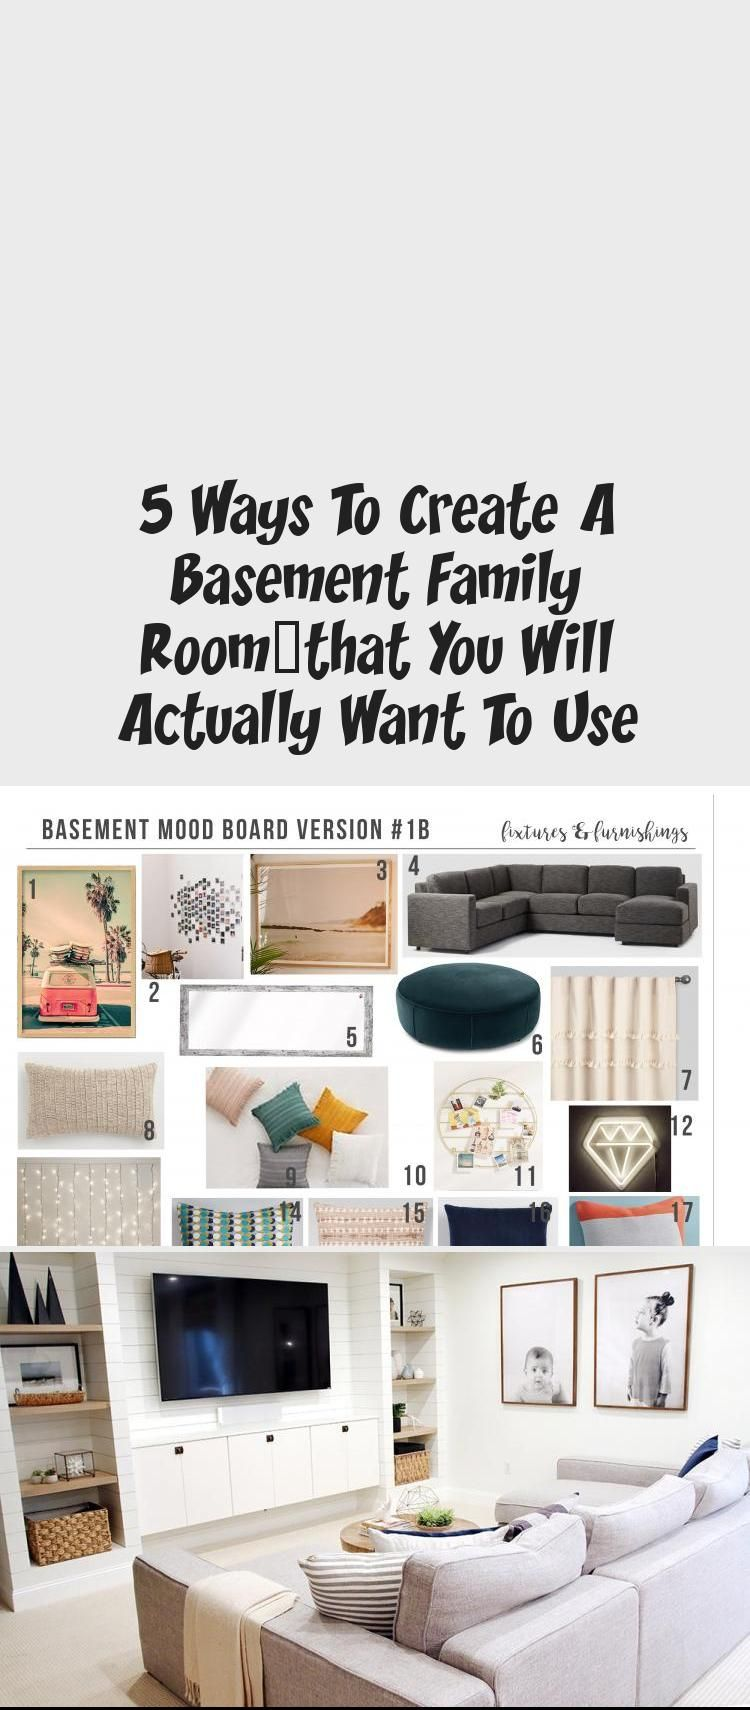 Order your room-inside-a-box, see inside at Postbox Designs, Interior E-Design: 5 Ways to Create a Basement Family Room You Will WANT to Use, Kid Hang-Out Space, Basement Family Room Ideas via Online Interior Design #Vintageinteriordesign #interiordesignHall #interiordesignEclectic #interiordesignTrends #Traditionalinteriordesign